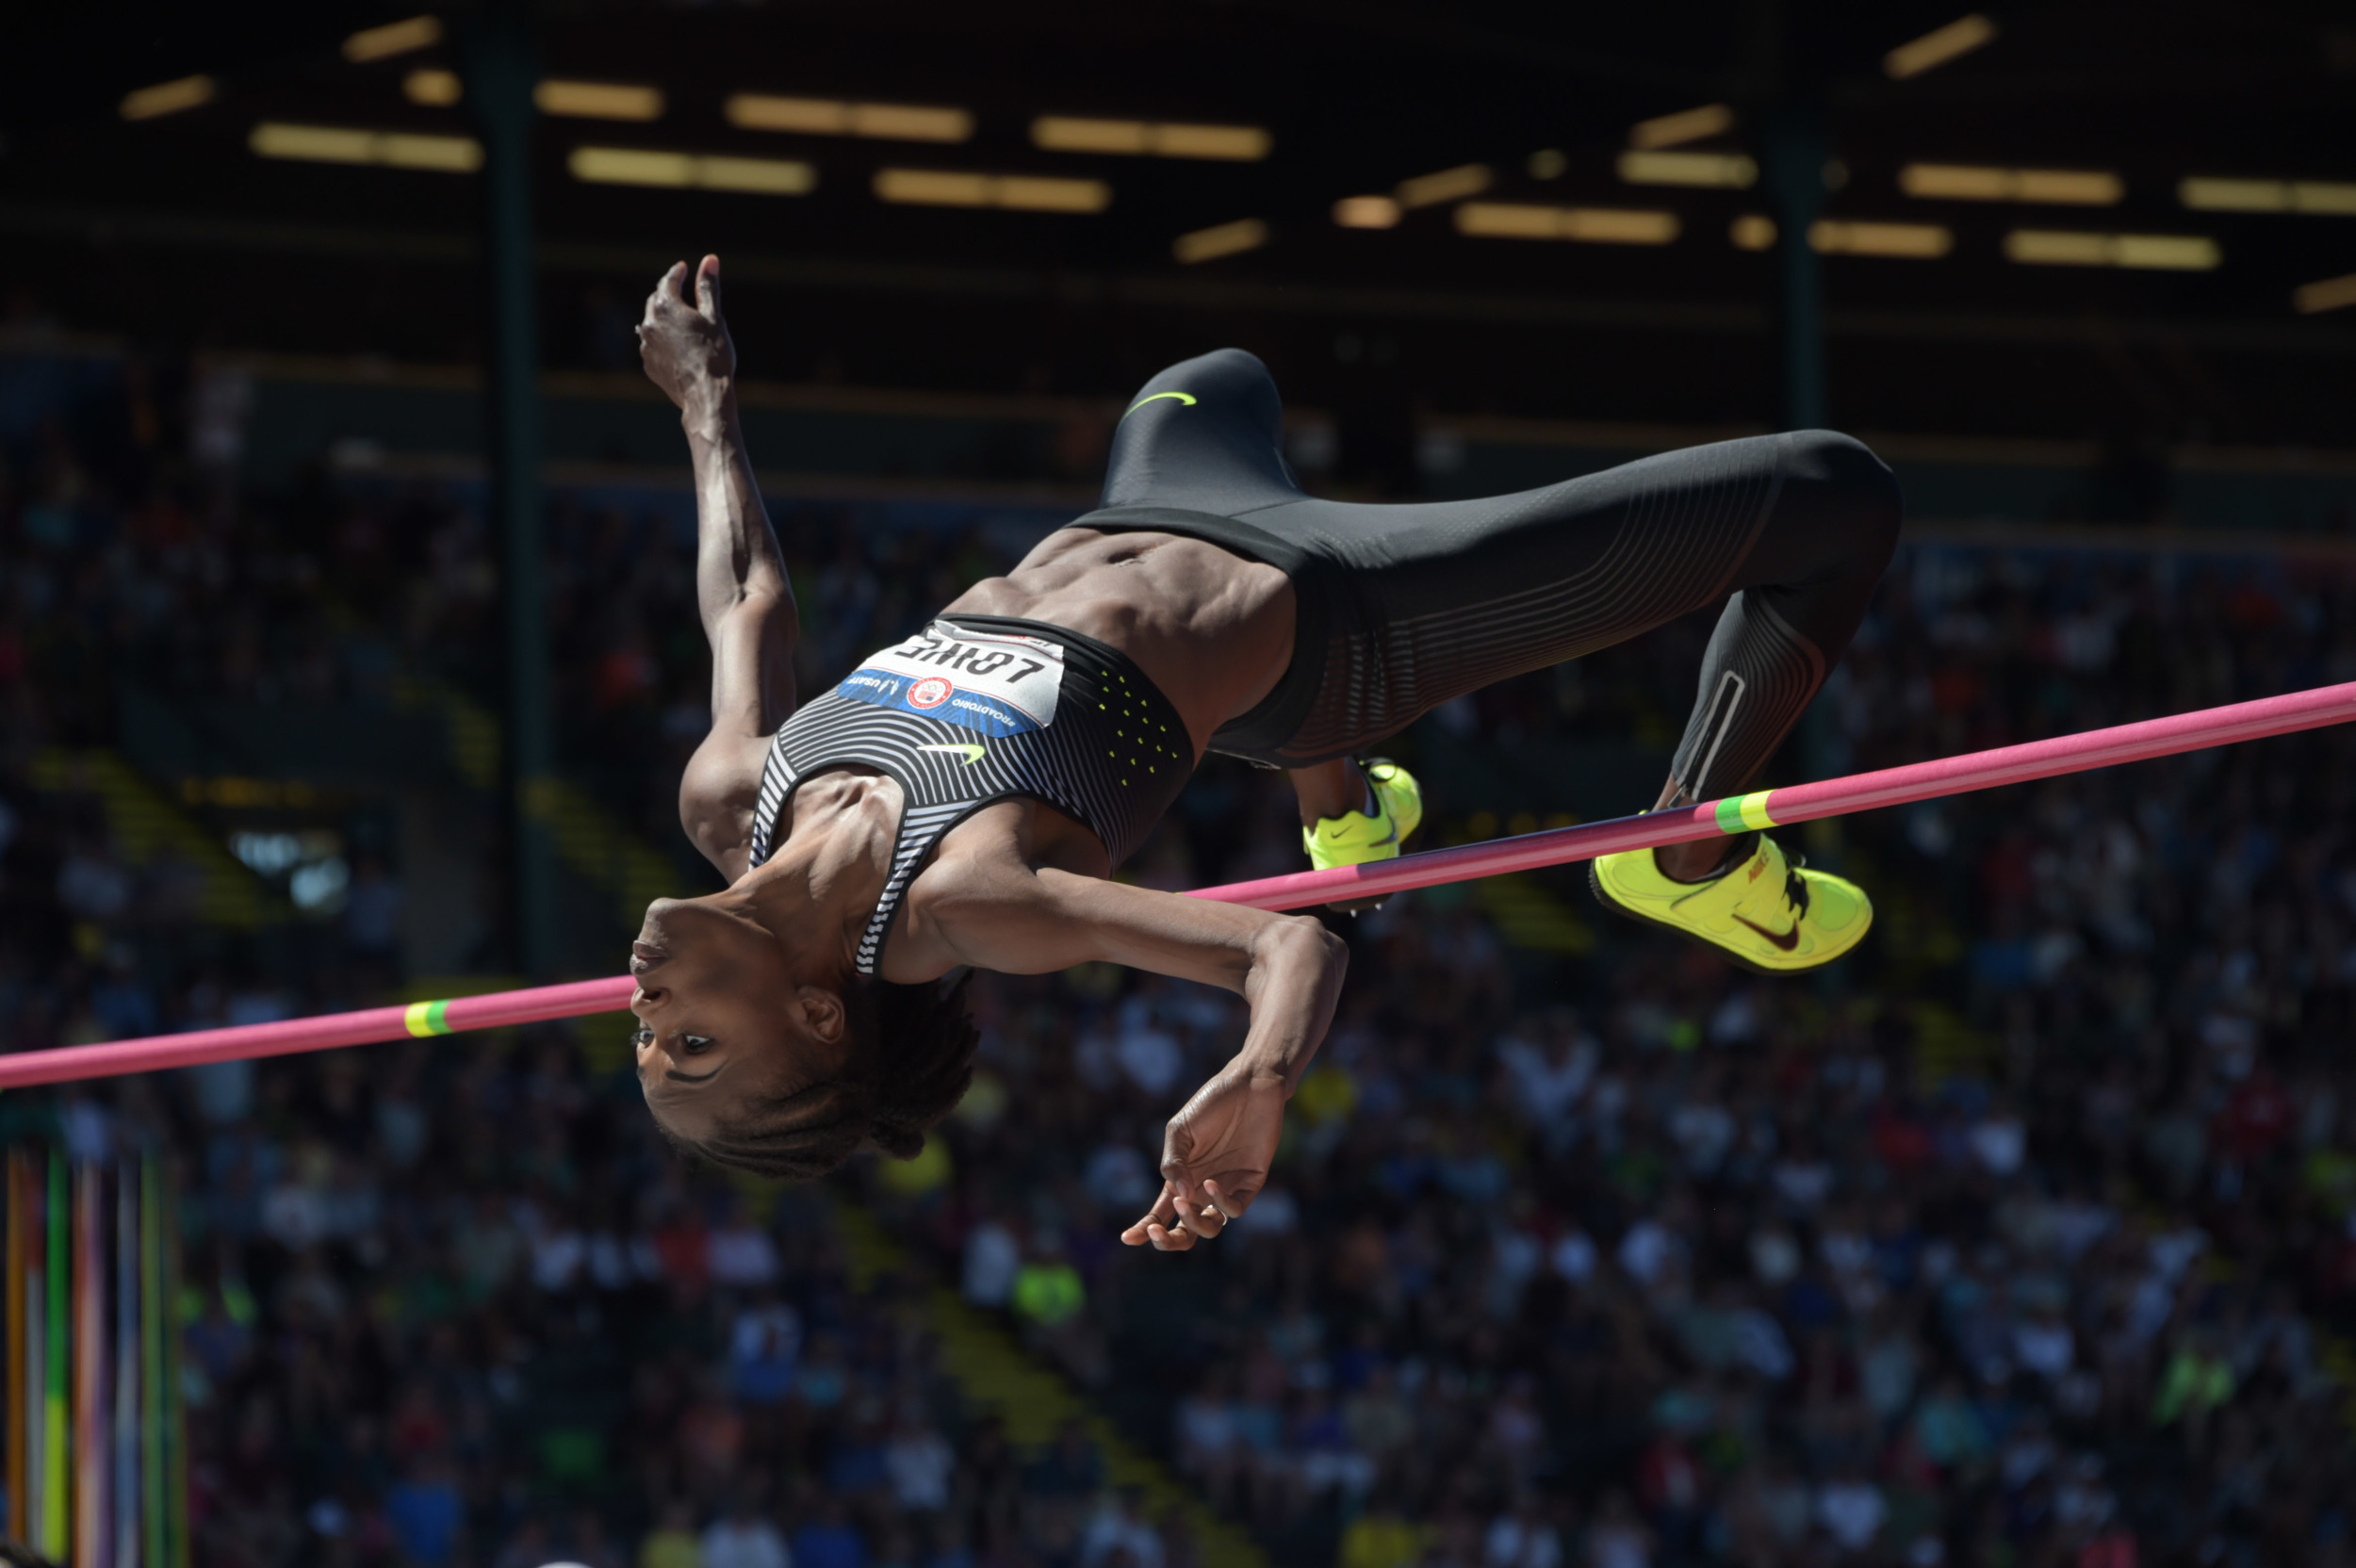 Chaunte Lowe demonstartes the Fosbury Flop high jump technique. Now the standard methos employed by all high jumpers, this method was once considered the greatest piece of innovation in world sport. Image supplied by Action Images / Kirby Lee.